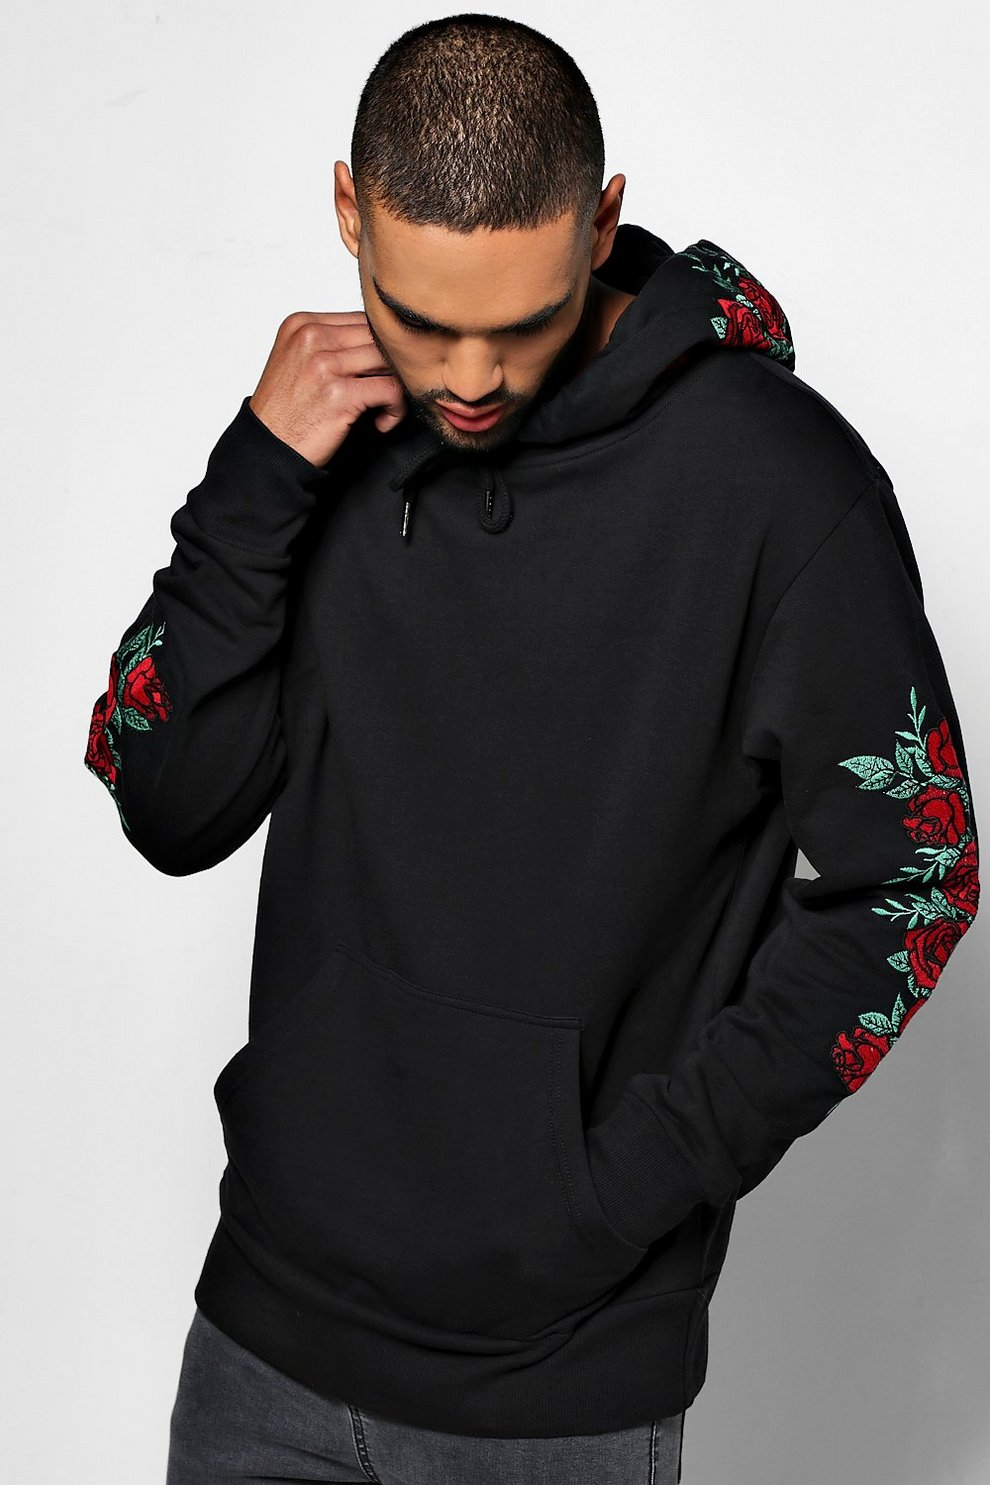 93c7753c61 Mens Black Over The Head Hoodie With Rose Embroidery